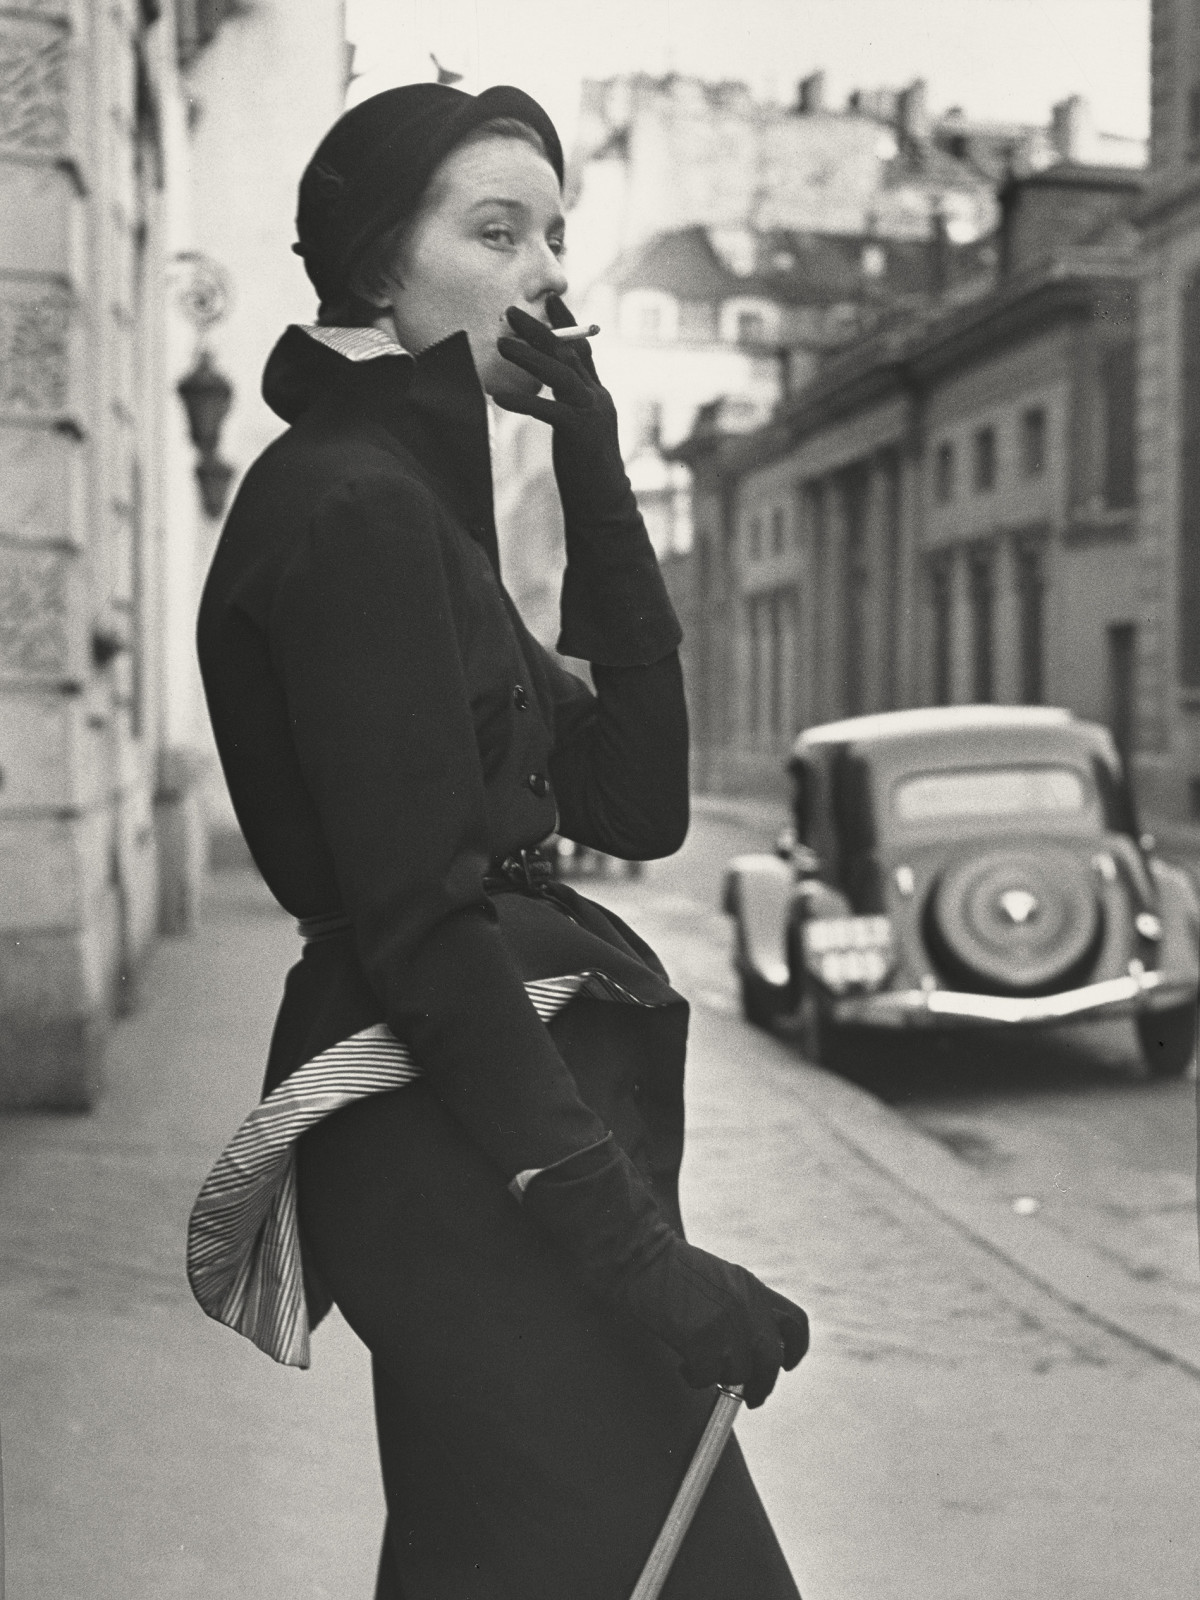 Paris Fashions Gordon Parks (1912-2006)